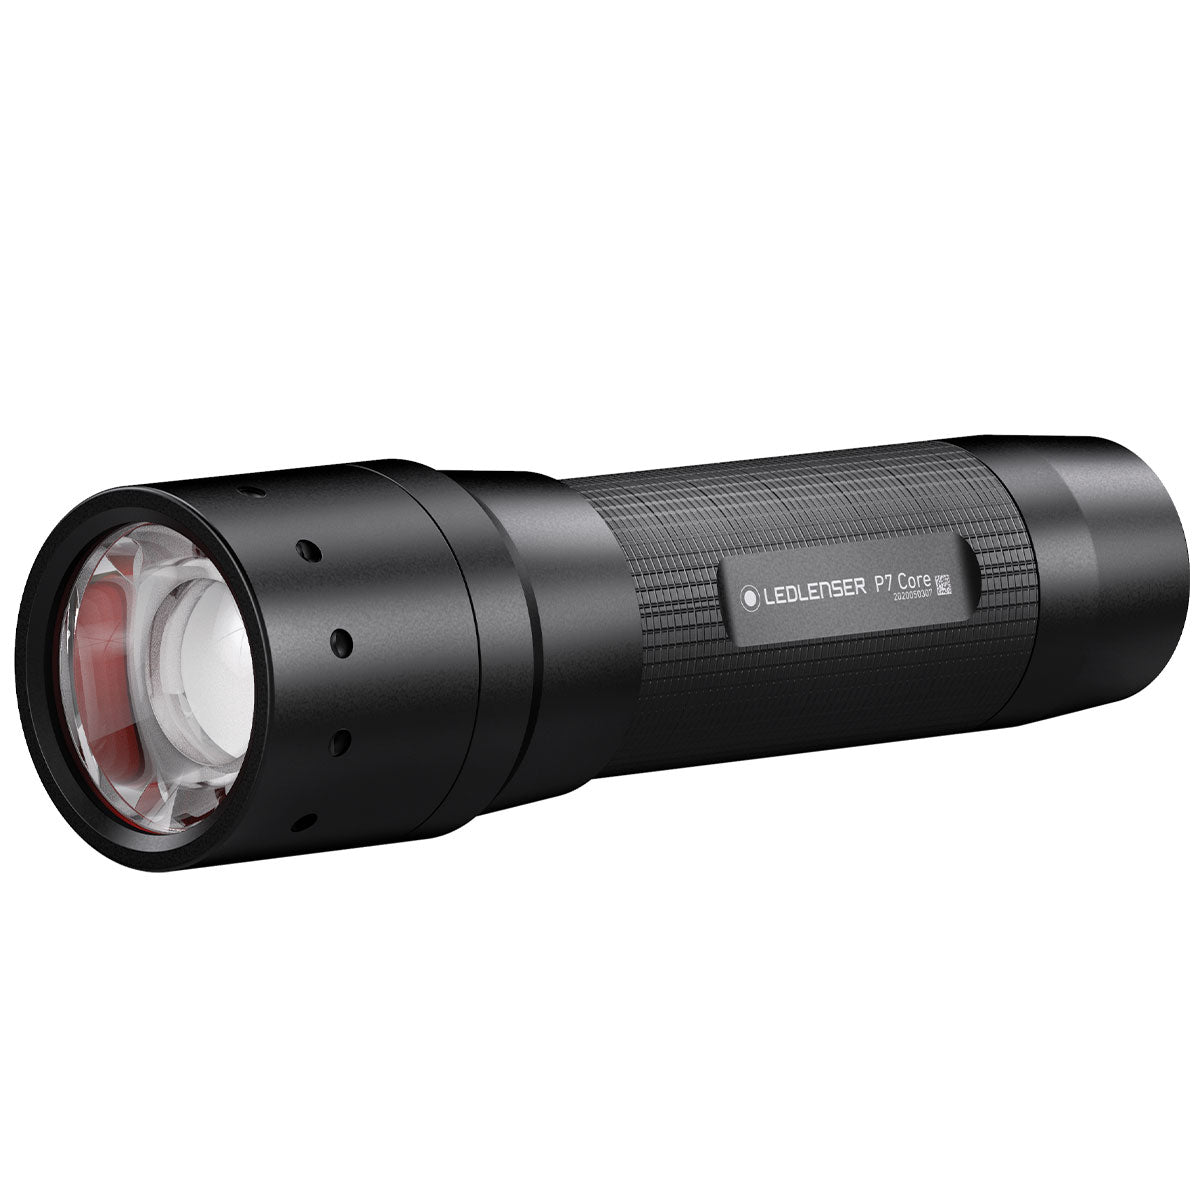 Torch Led Ledlenser P7 Core - 450Lm